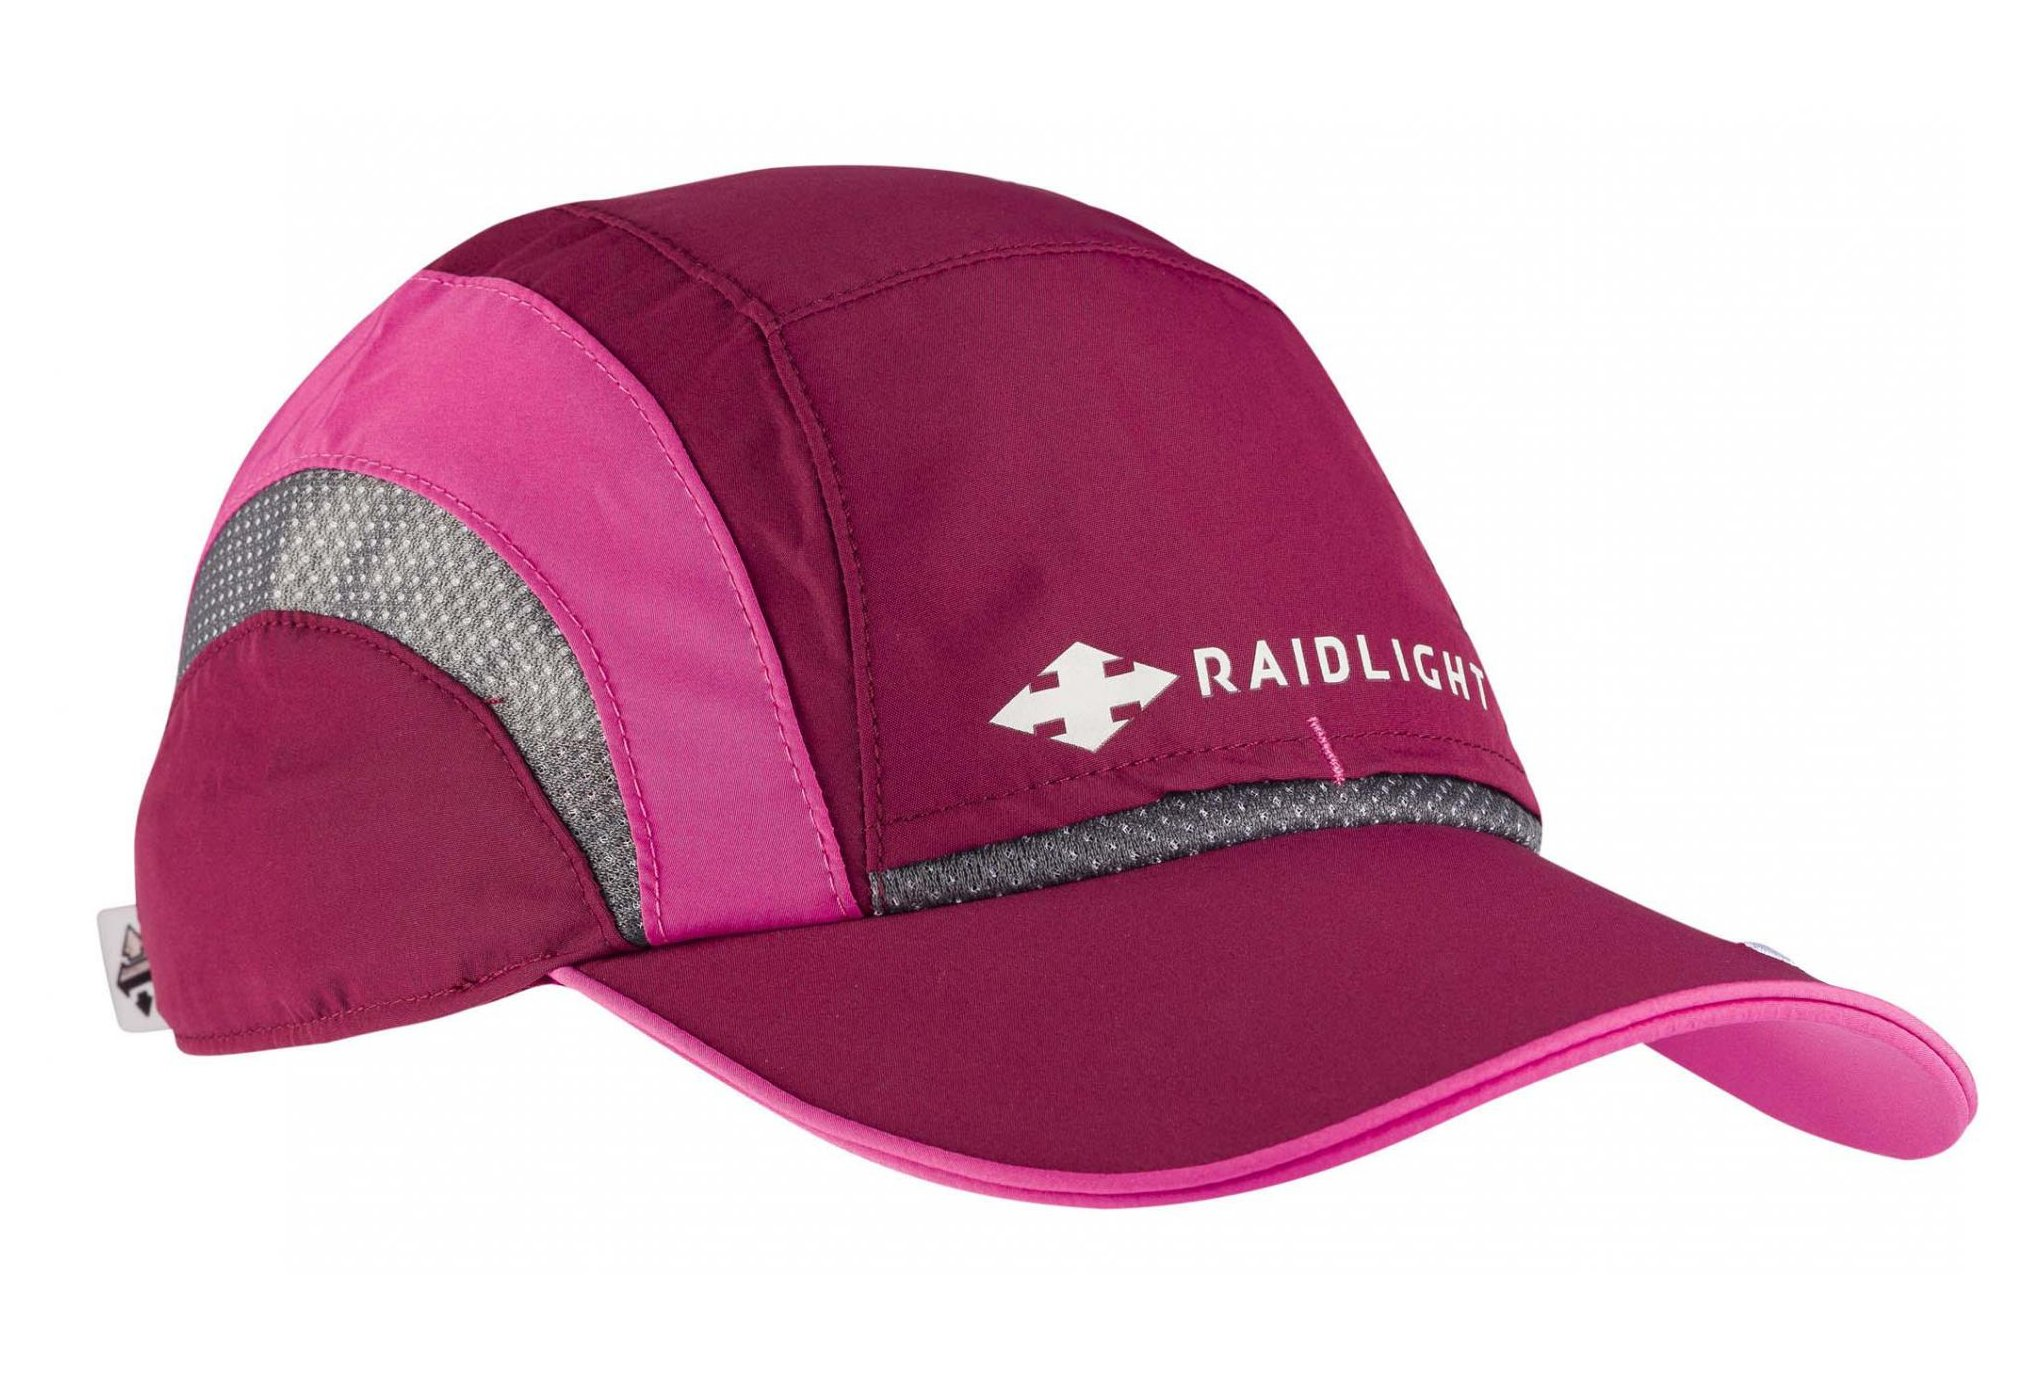 Raidlight R-Light Casquettes / bandeaux